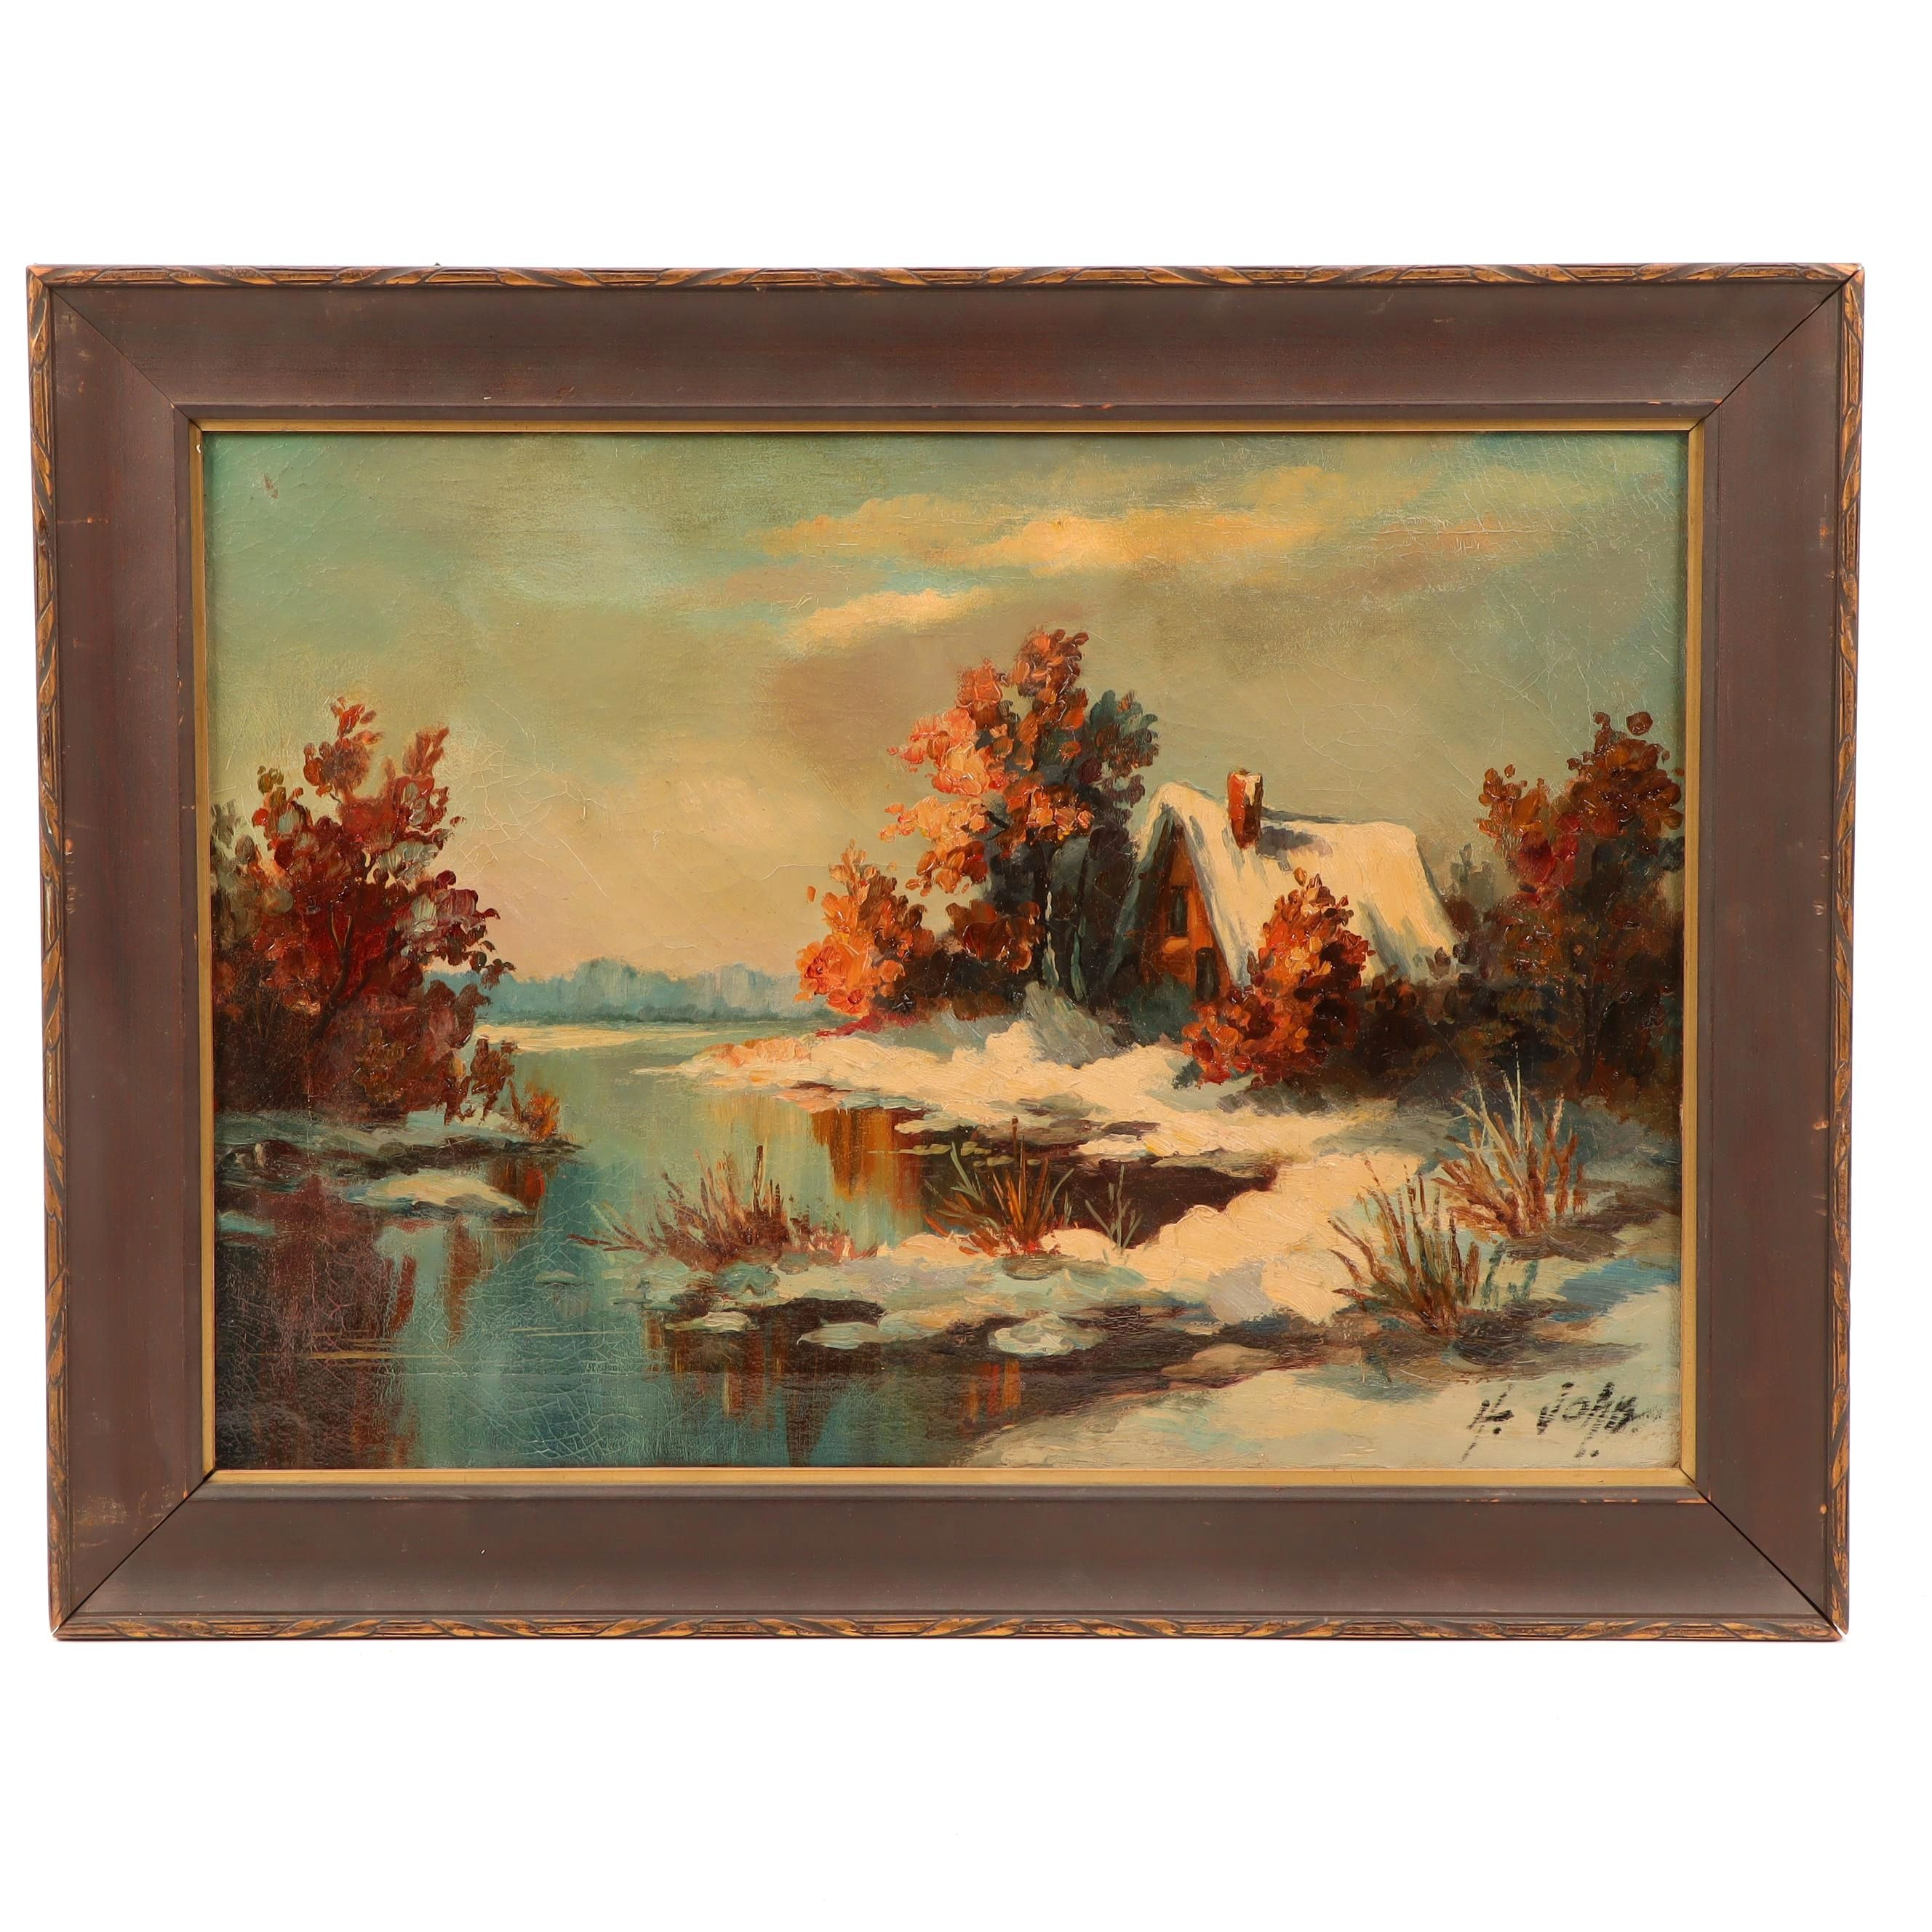 Oil Painting of Cabin in Landscape